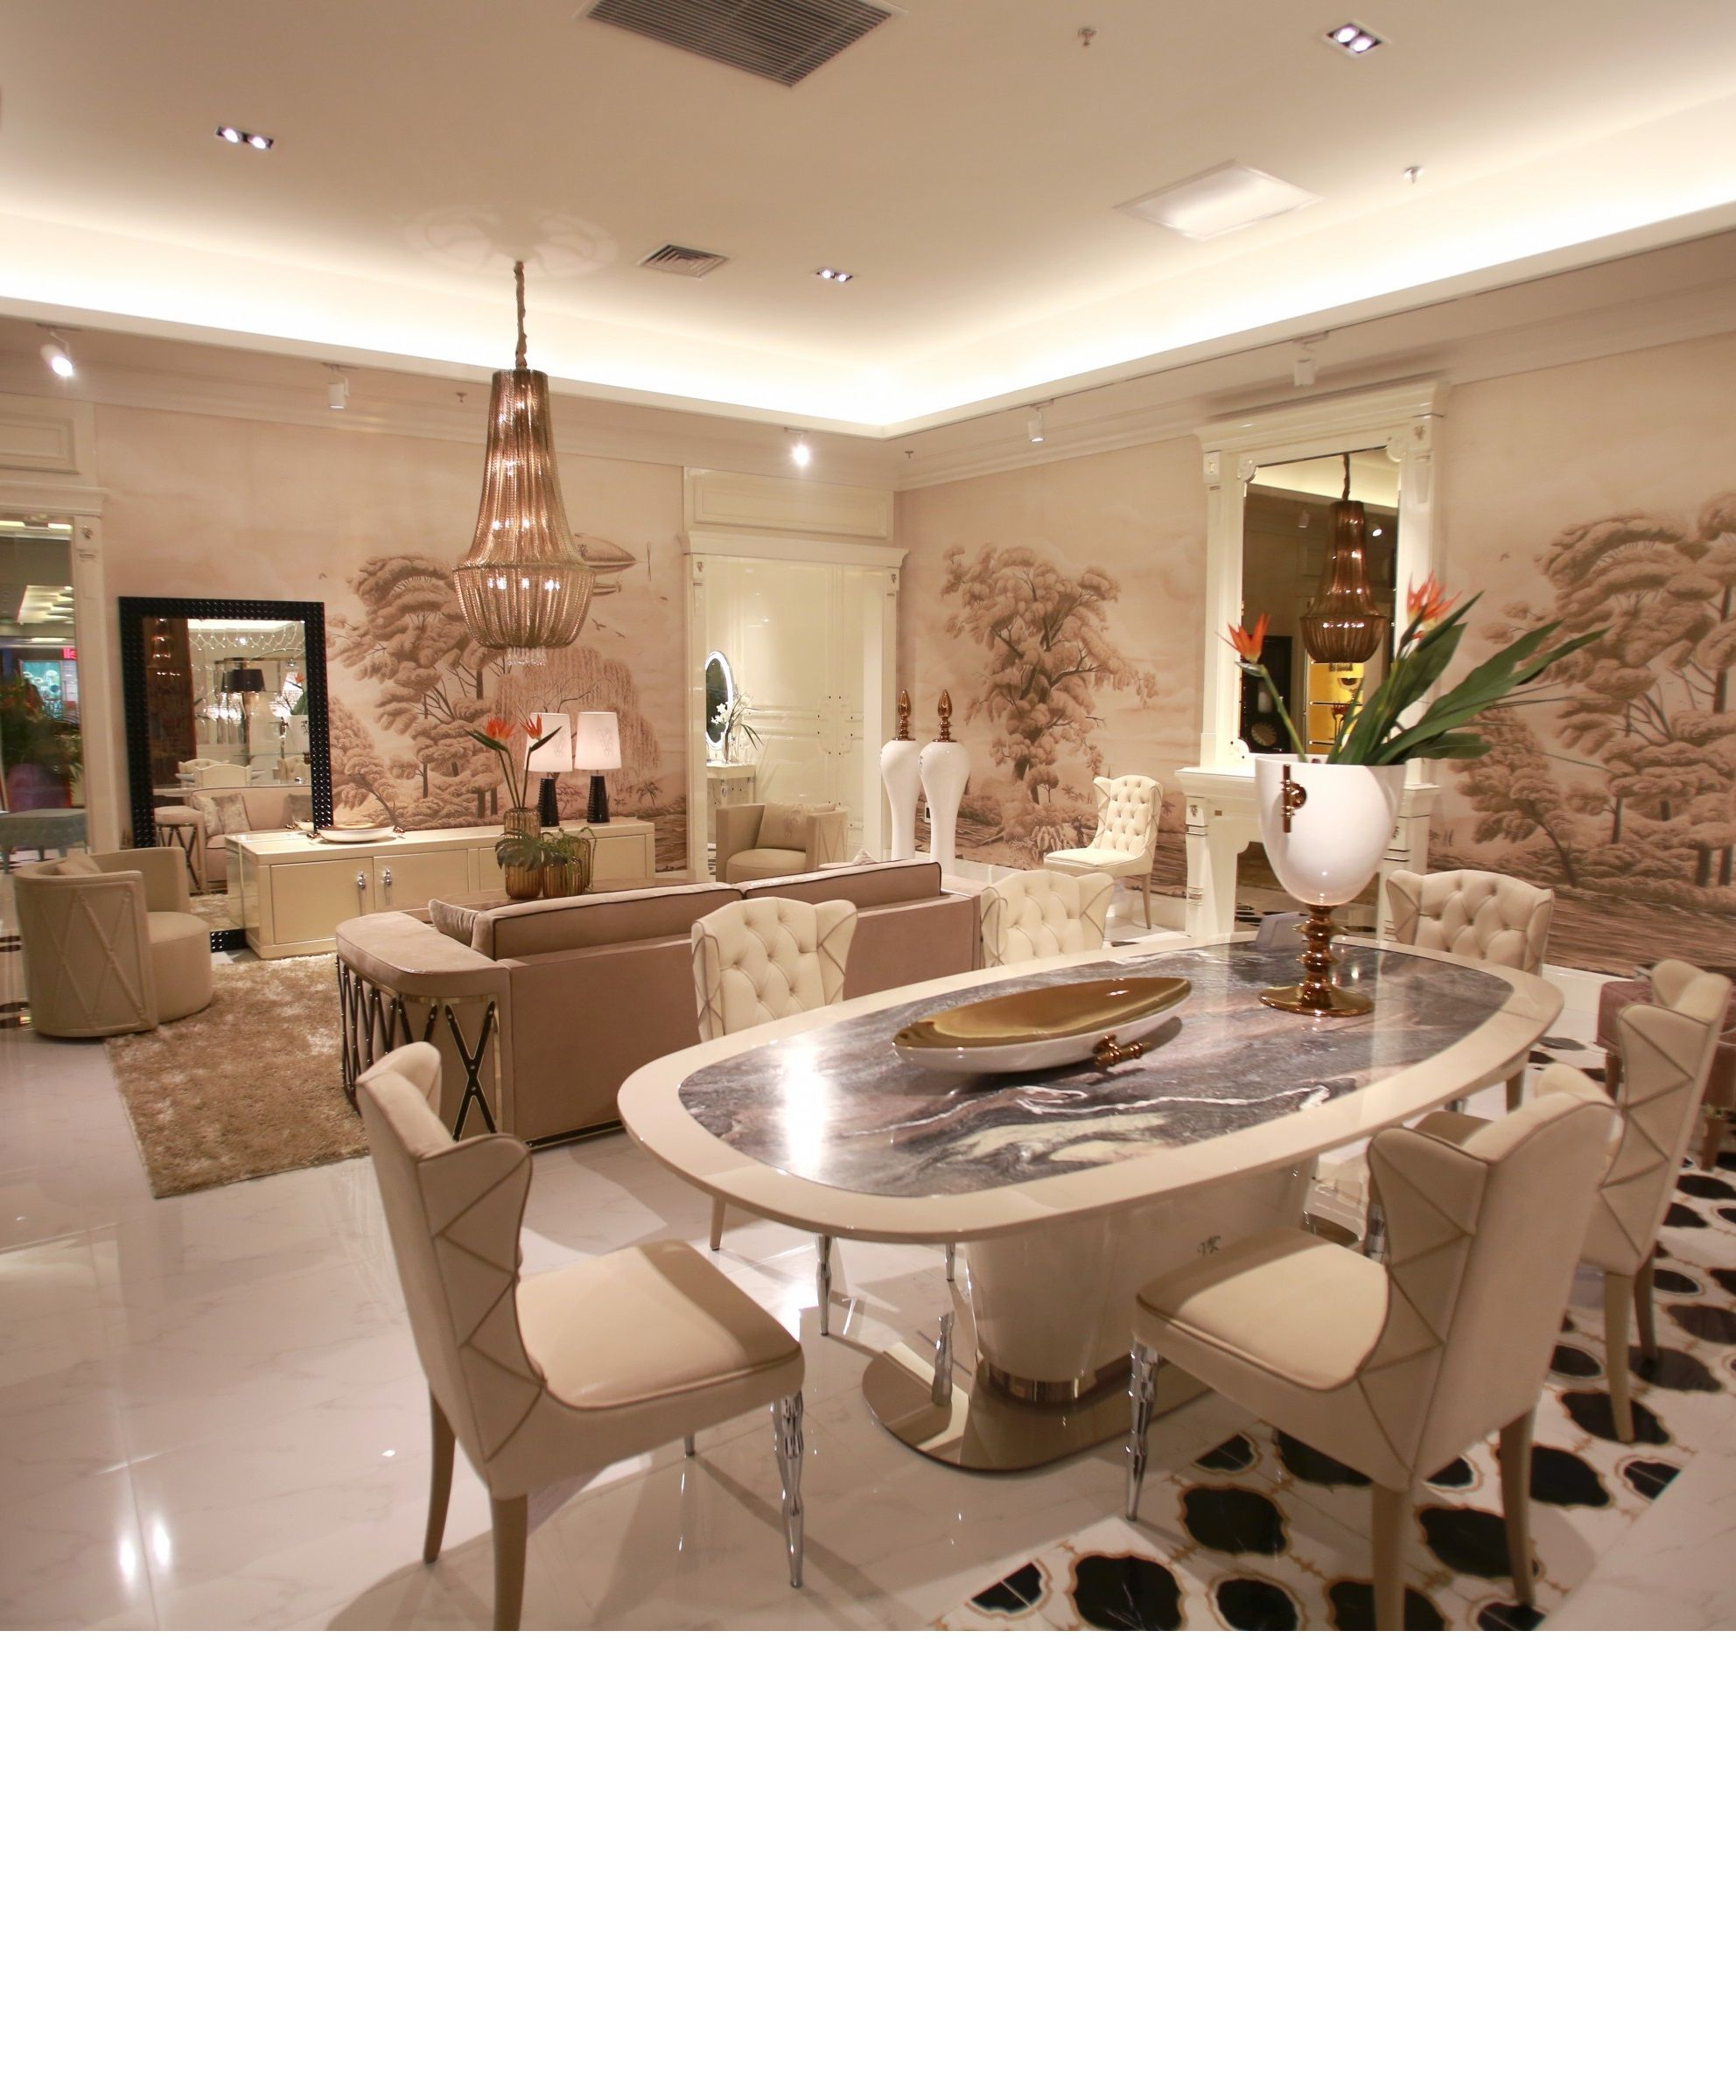 Bring A Portion Of The World To Your Home With High End Pieces From Exclusive Selections Hotel Furniture Design